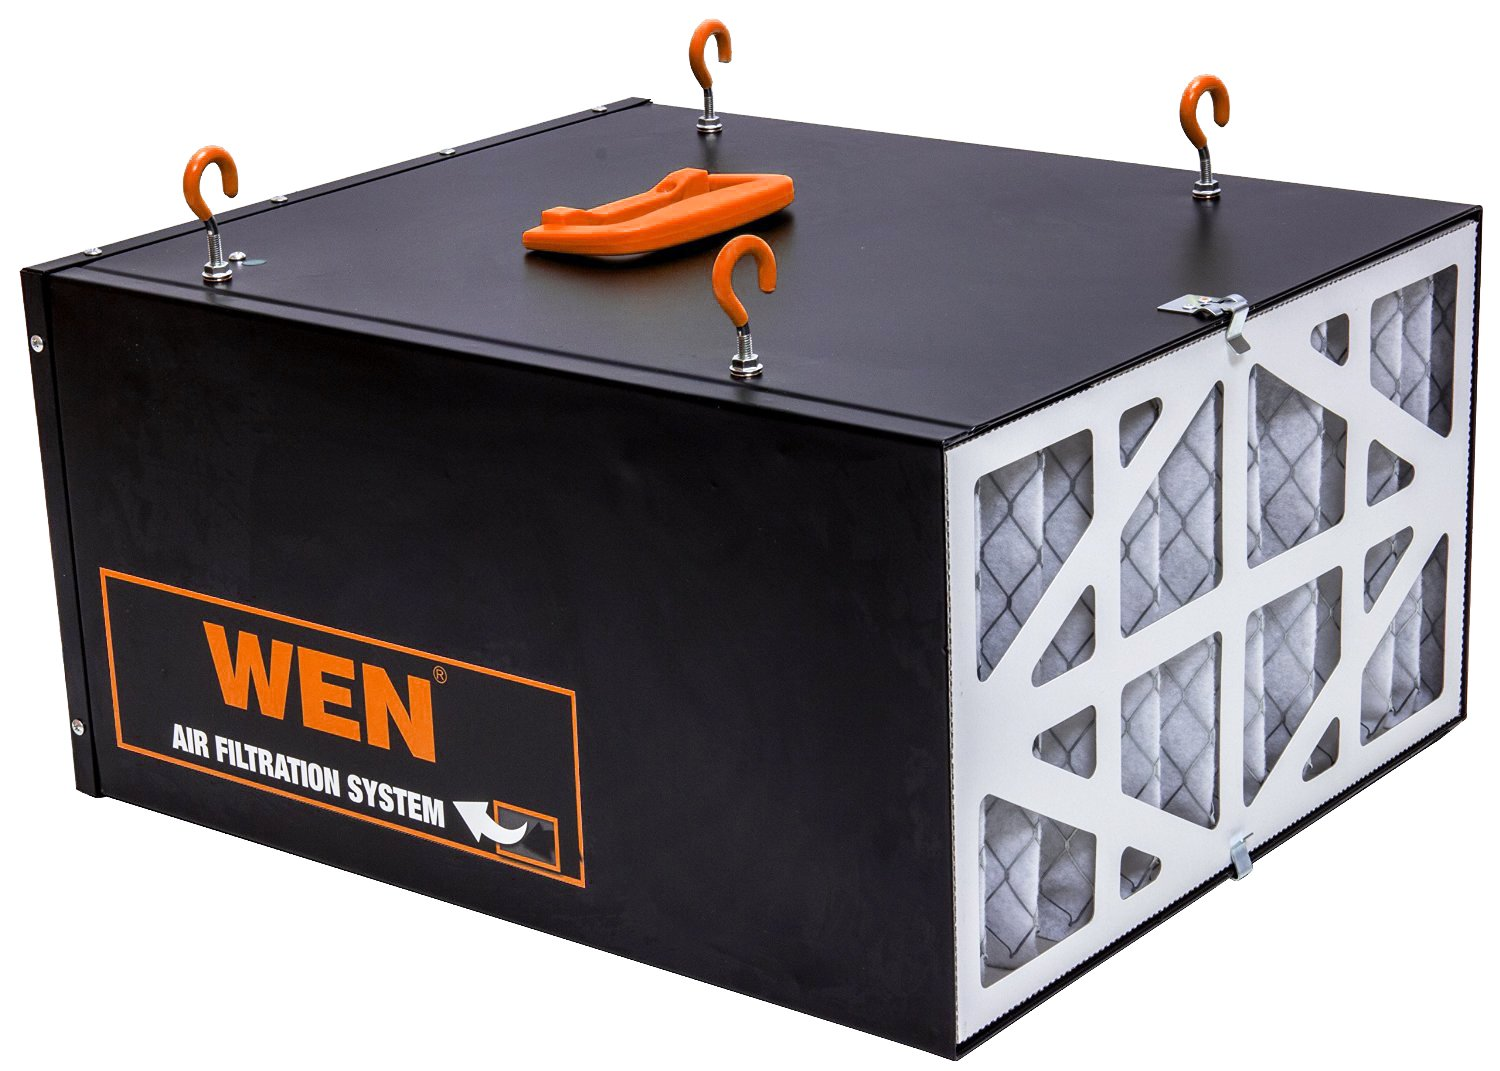 WEN 3410 3-Speed Remote-Controlled Air Filtration System by WEN (Image #2)